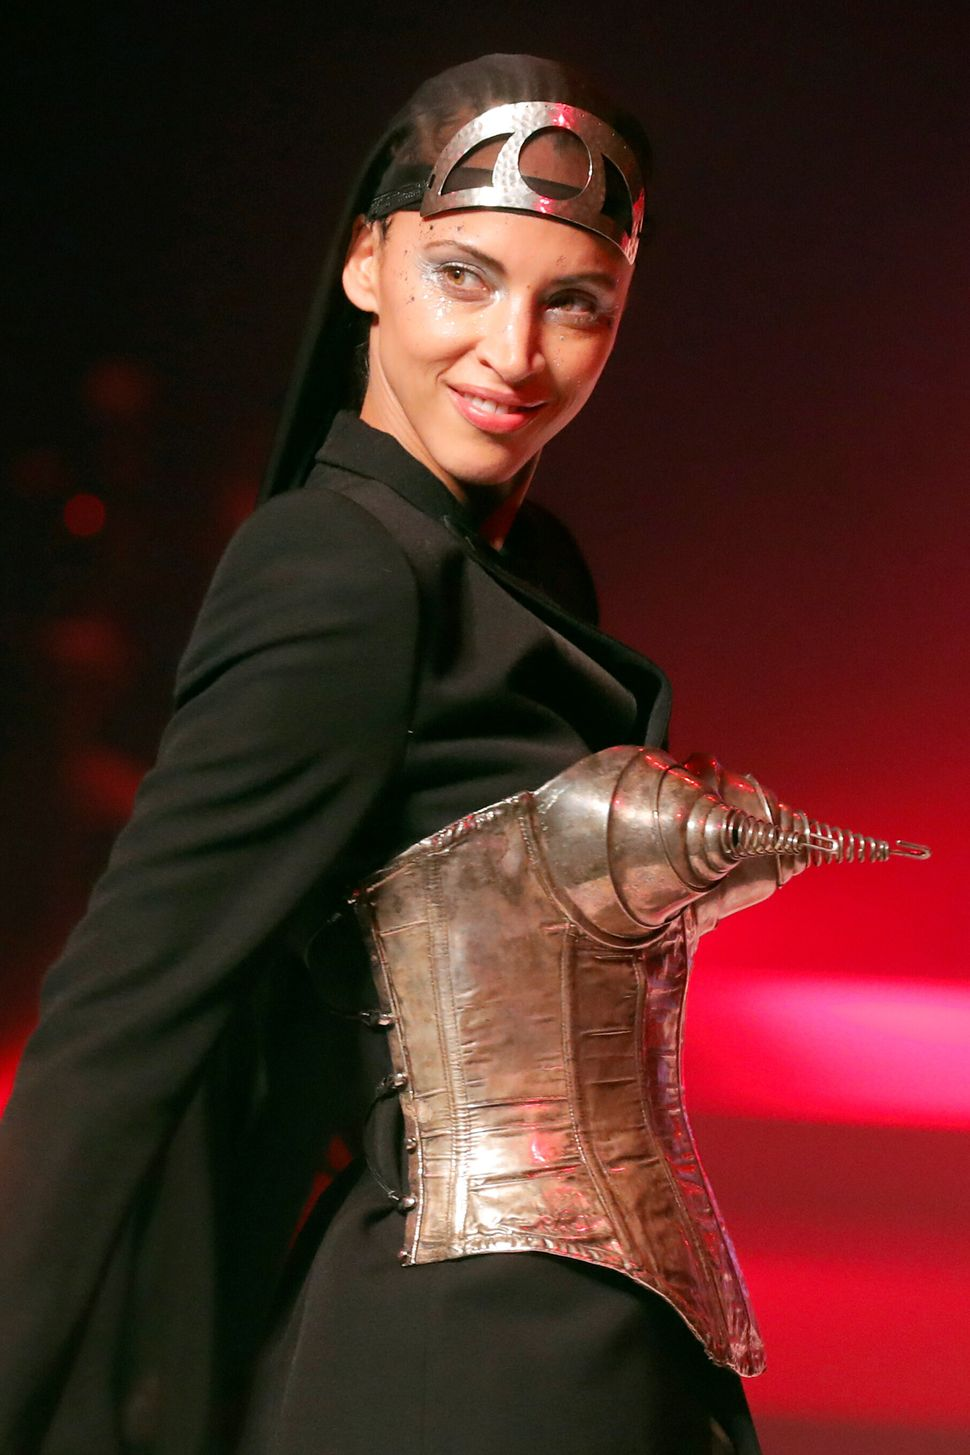 Noemie Lenoir presents a creation by designer Jean Paul Gaultier as part of his Haute Couture Spring/Summer 2020 collection show in Paris, France, January 22, 2020. Picture taken January 22, 2020. REUTERS/Charles Platiau